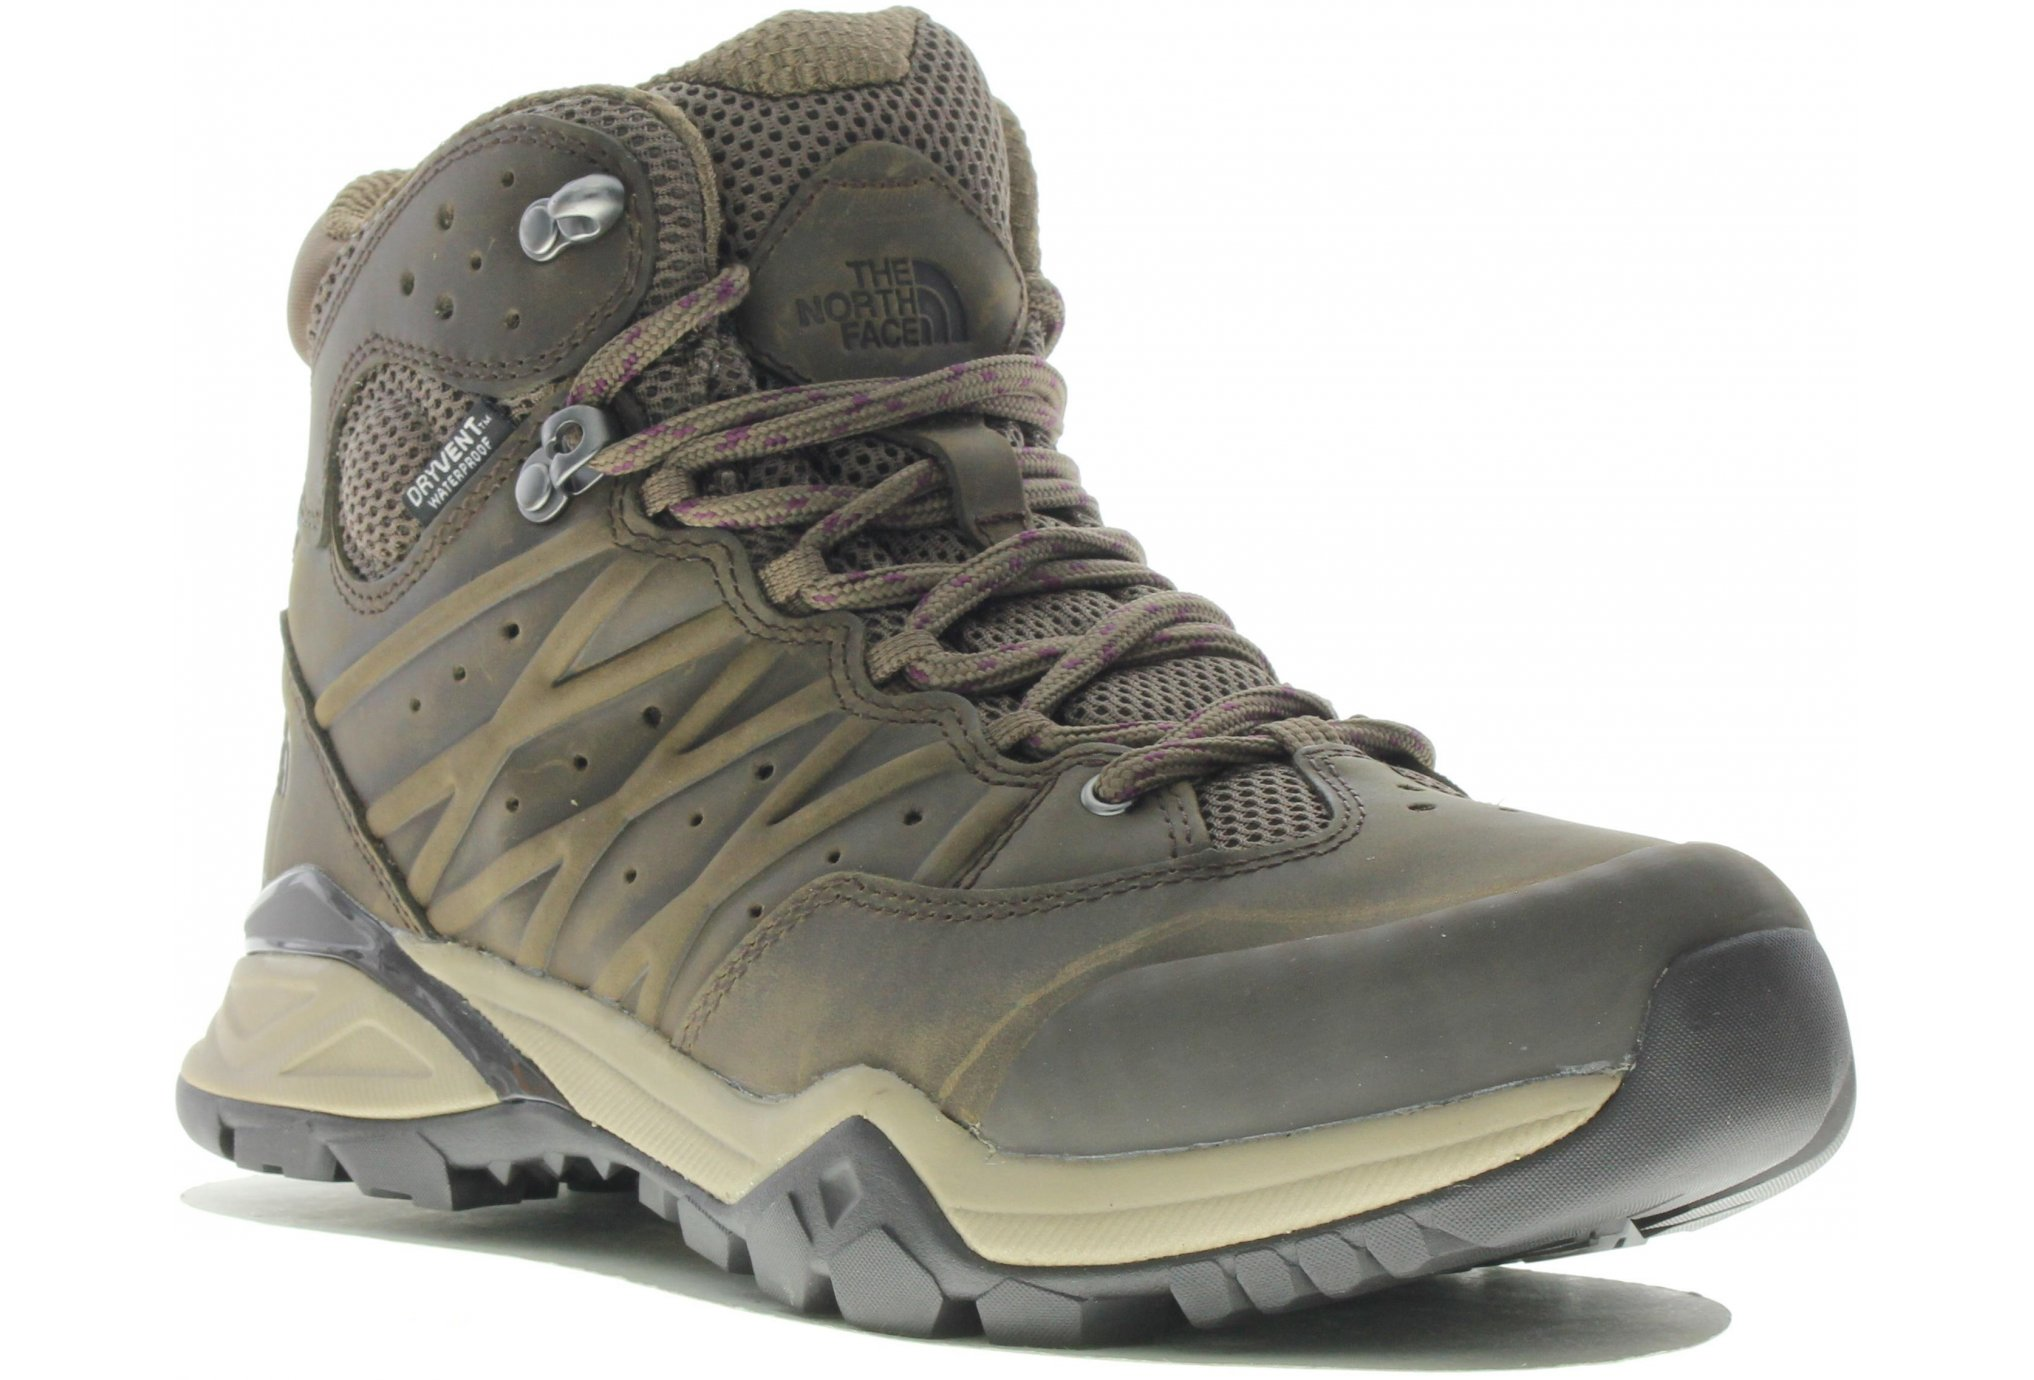 The North Face Hedgehog Hike II Mid WP W Chaussures running femme